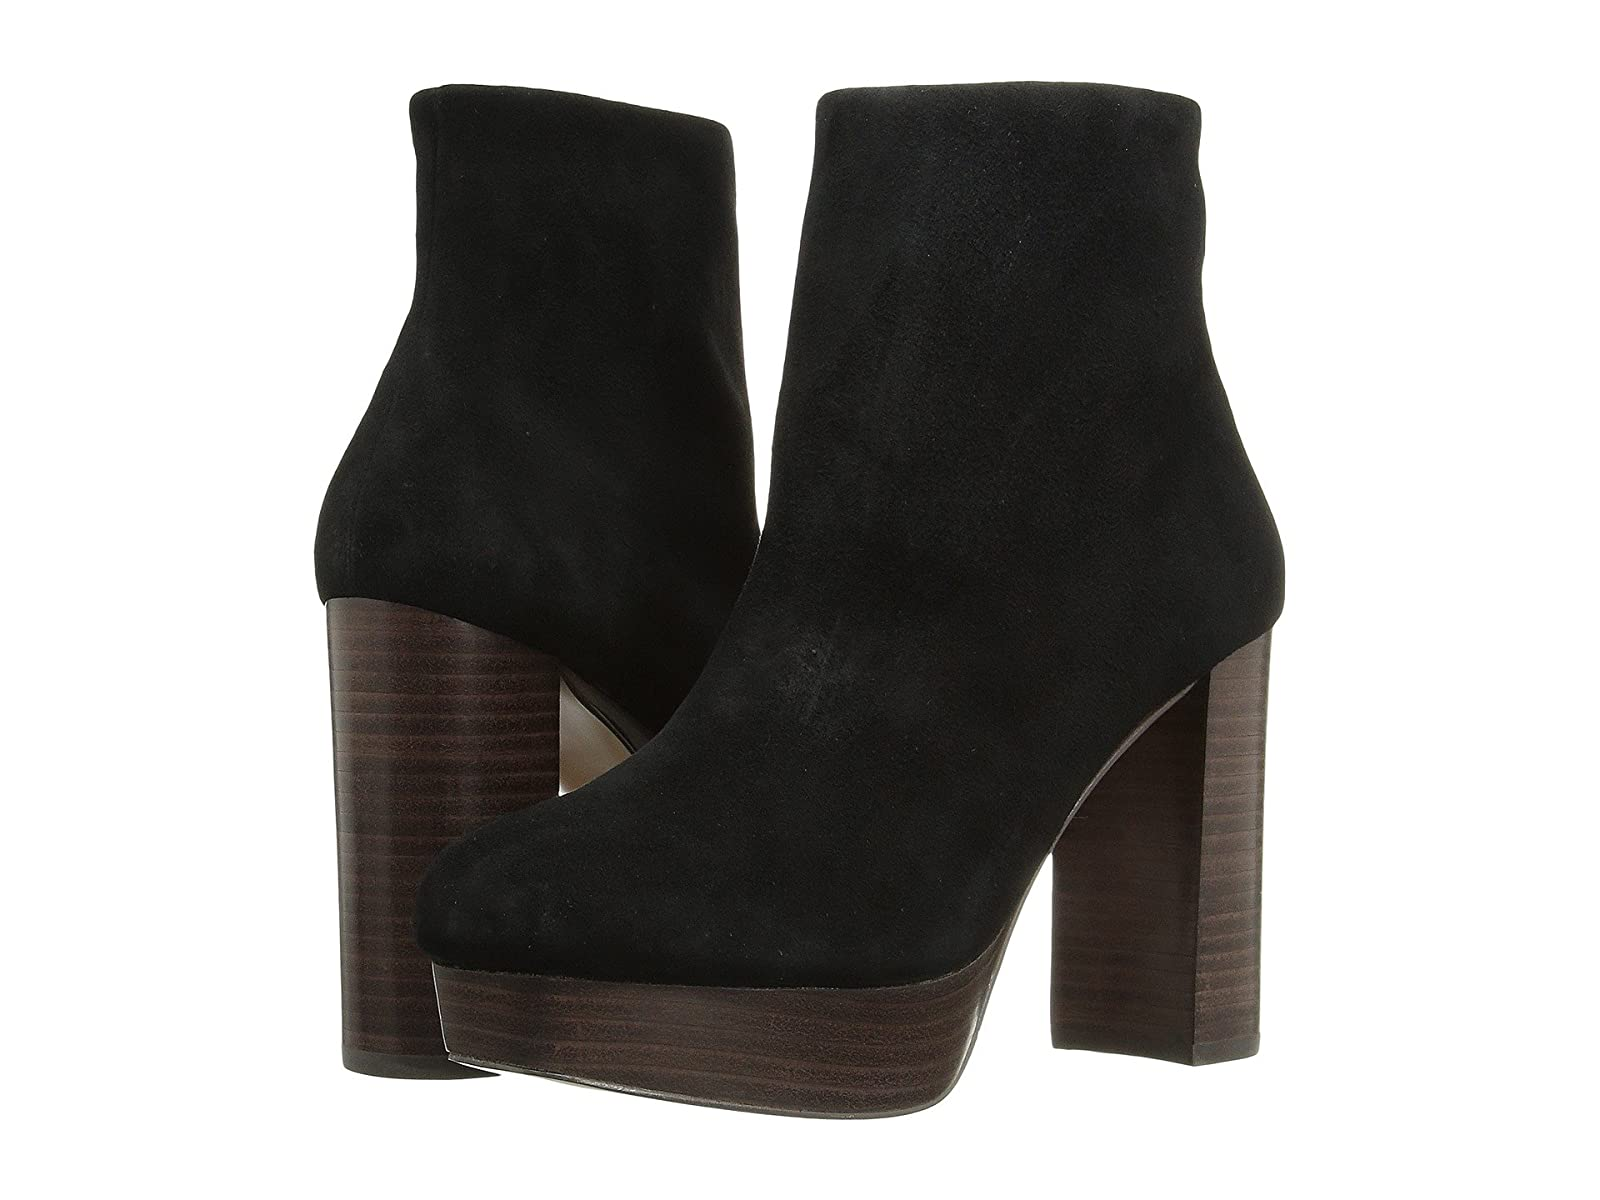 Shellys London HammersmithCheap and distinctive eye-catching shoes